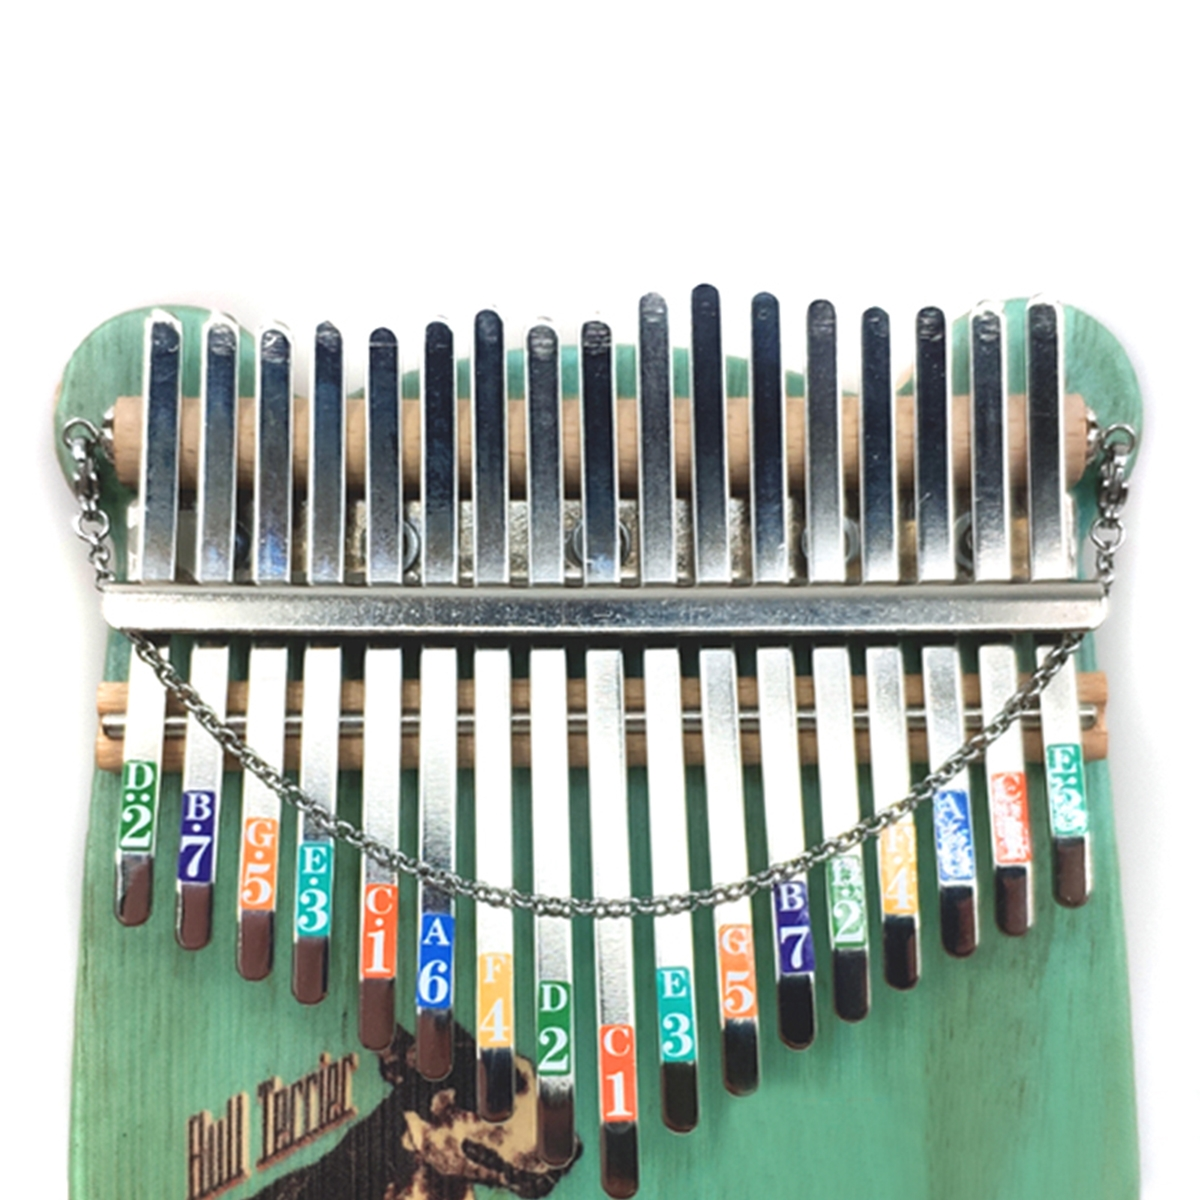 Thumb Piano Finger Percussion Mbira Vibration Chain